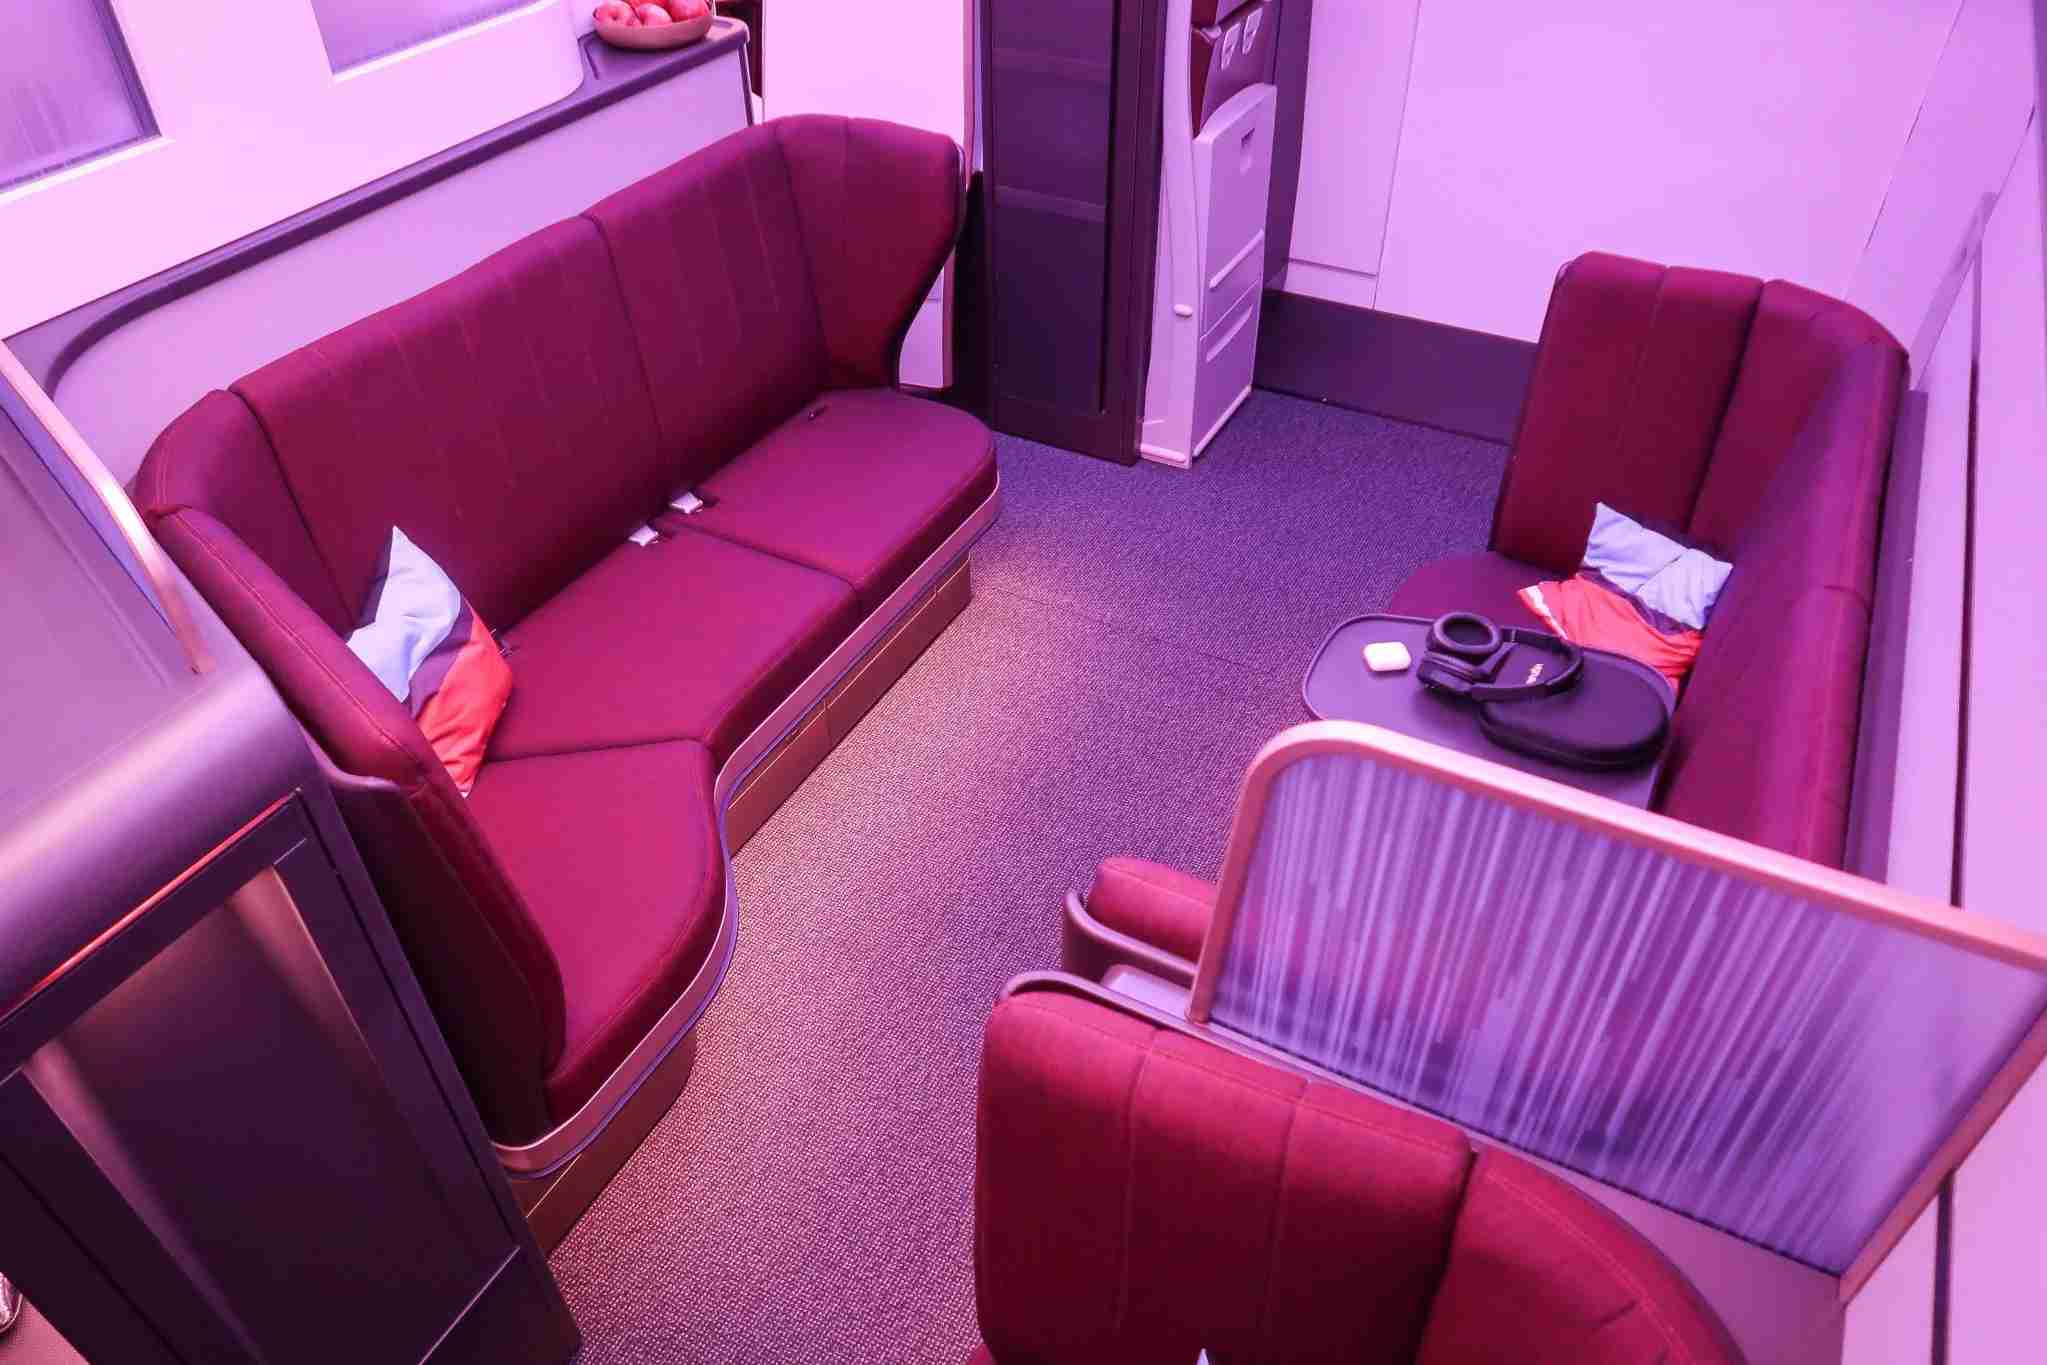 The new Virgin Atlantic Upper Class Lounge found on the Airbus A350-1000. (Image by Nicky Kelvin / The Points Guy)